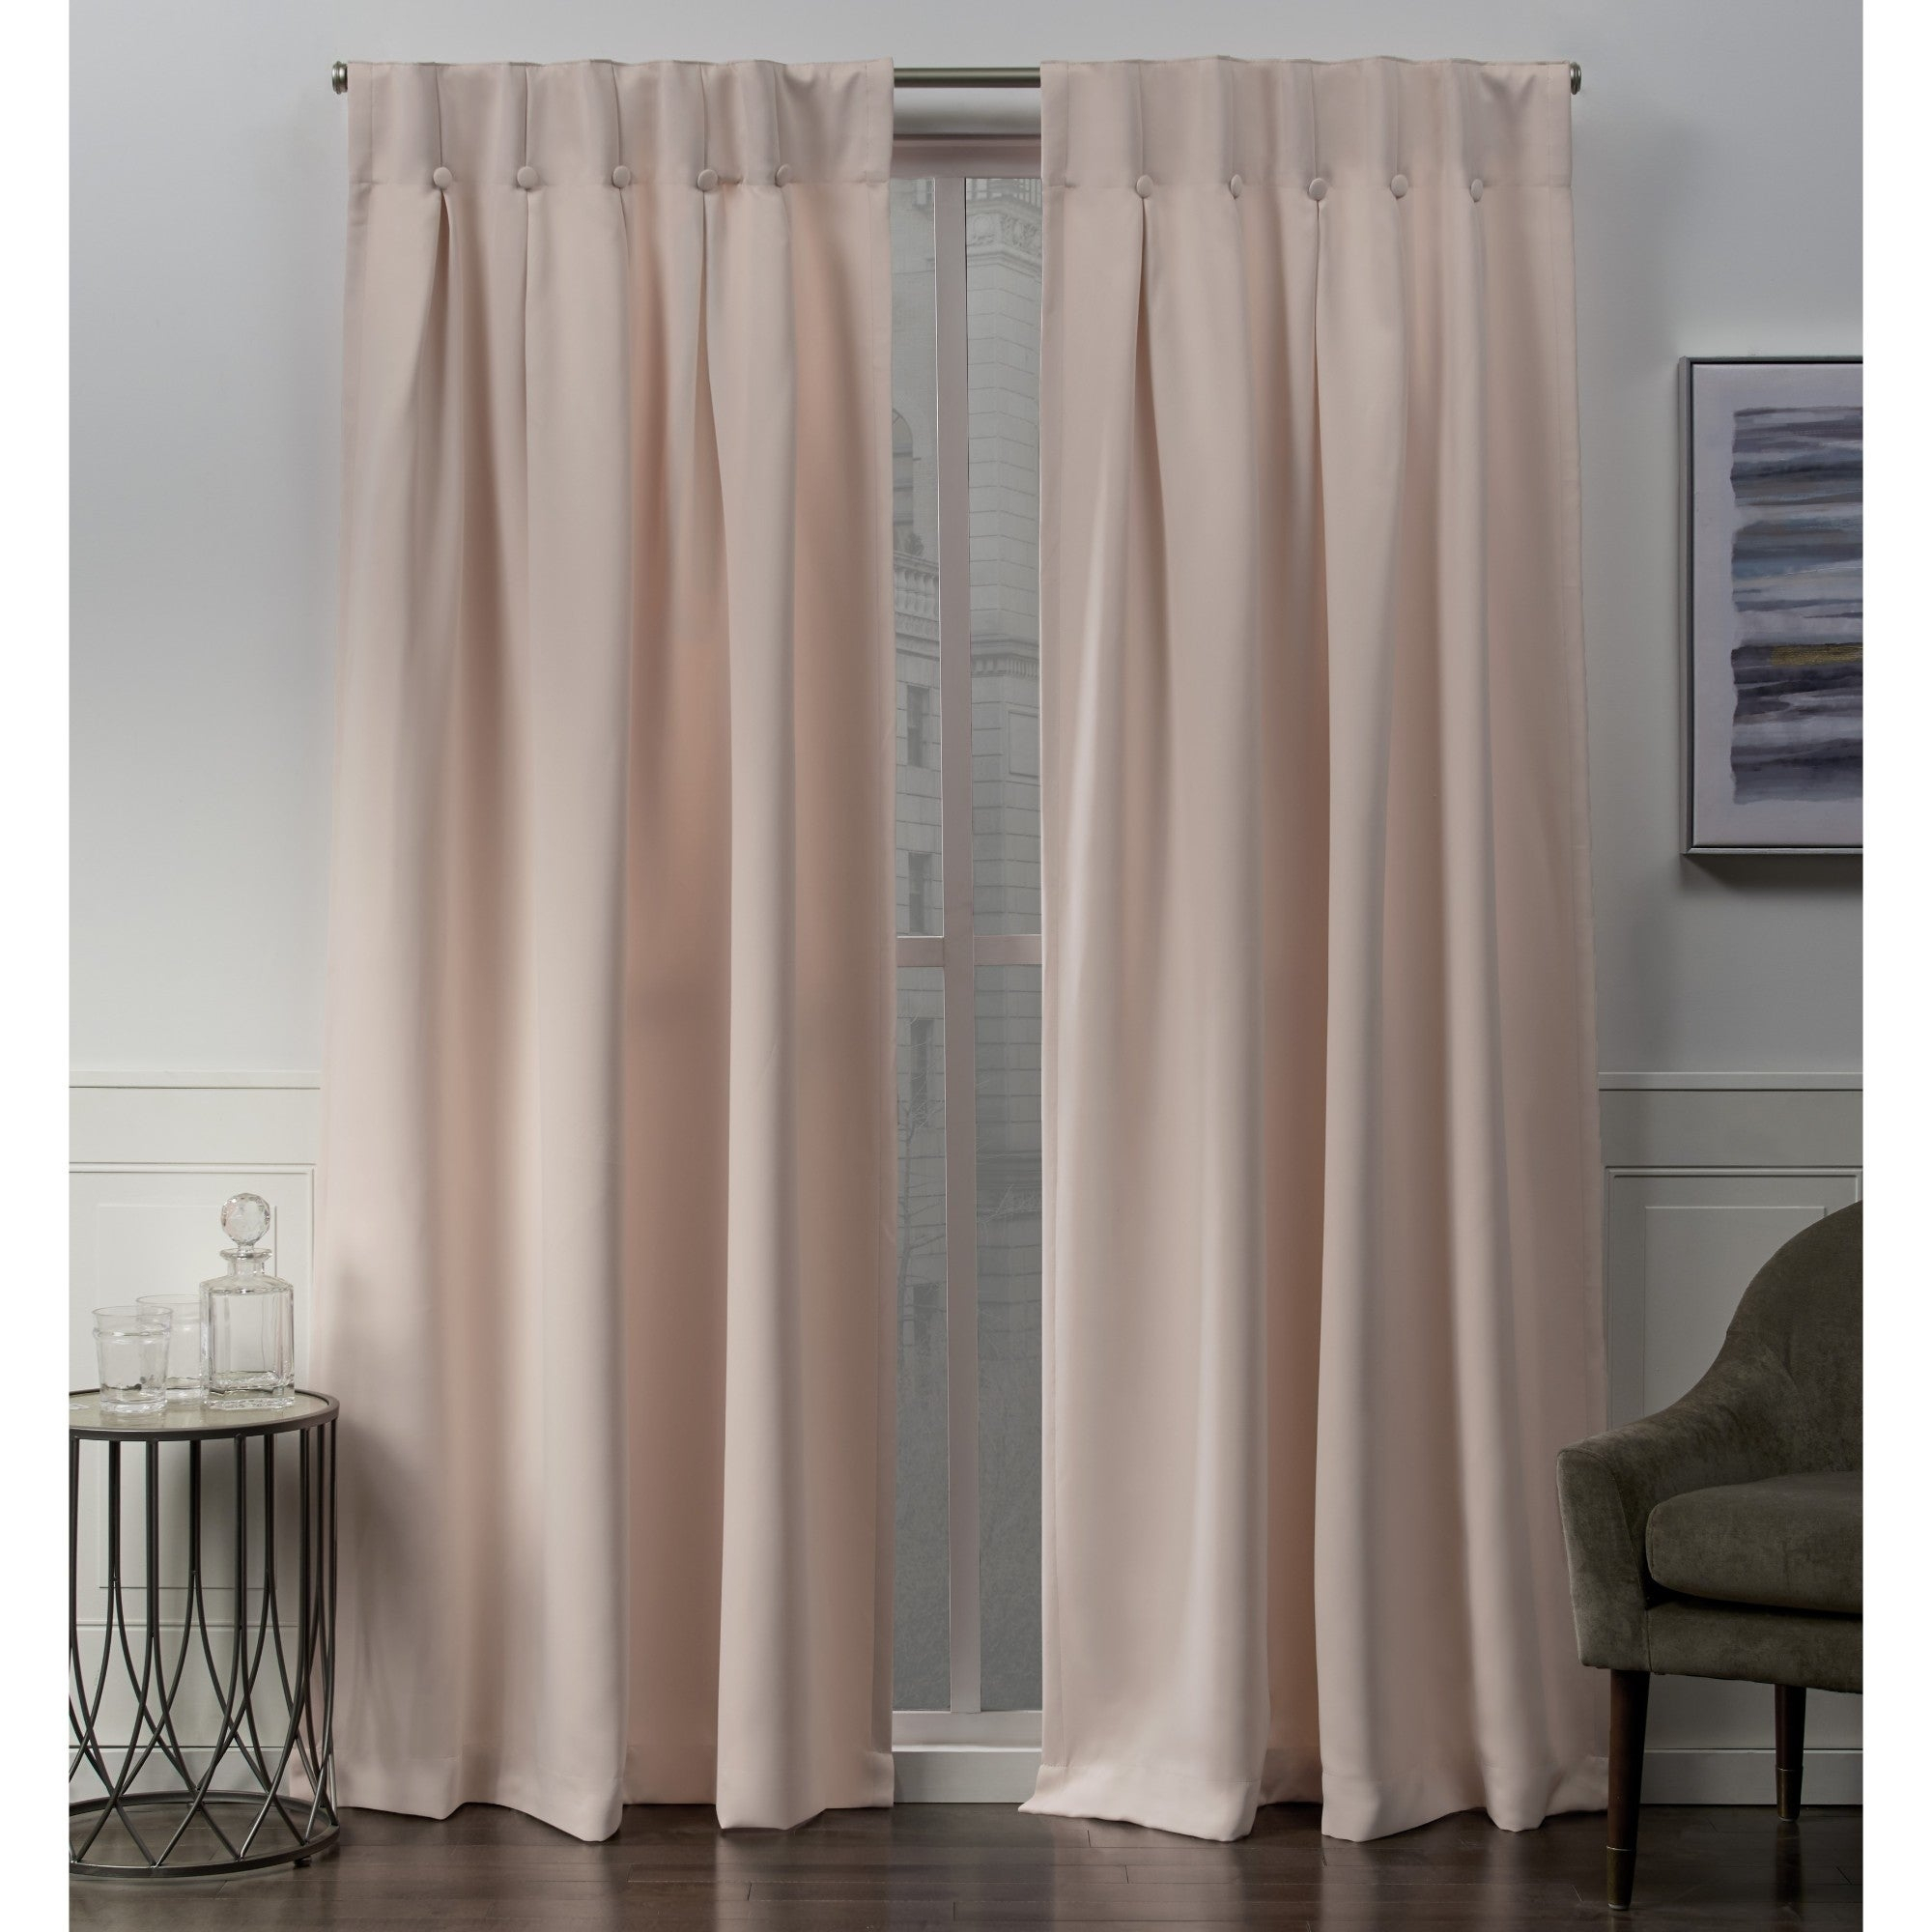 Ati Home Sateen Woven Blackout Button Top Window Curtain Panel Pair Pertaining To Sateen Woven Blackout Curtain Panel Pairs With Pinch Pleat Top (View 5 of 20)